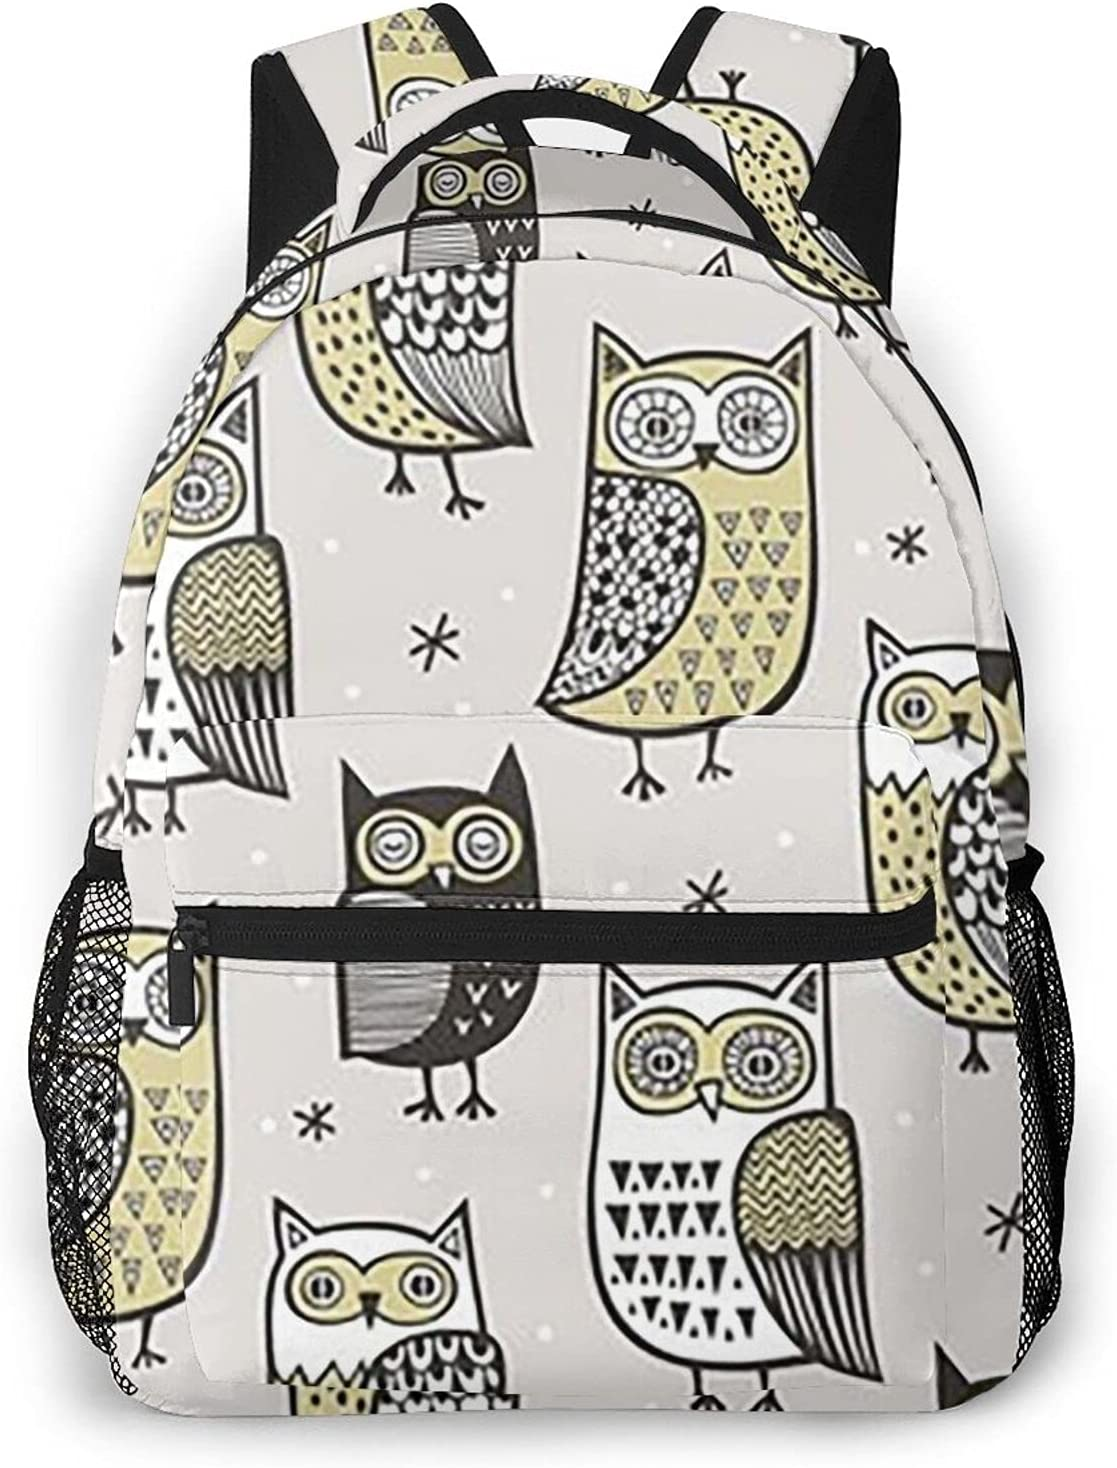 Owls Winter Travel Daypack Inventory cleanup selling New item sale Student Backpack Rucksack Ligh Laptop